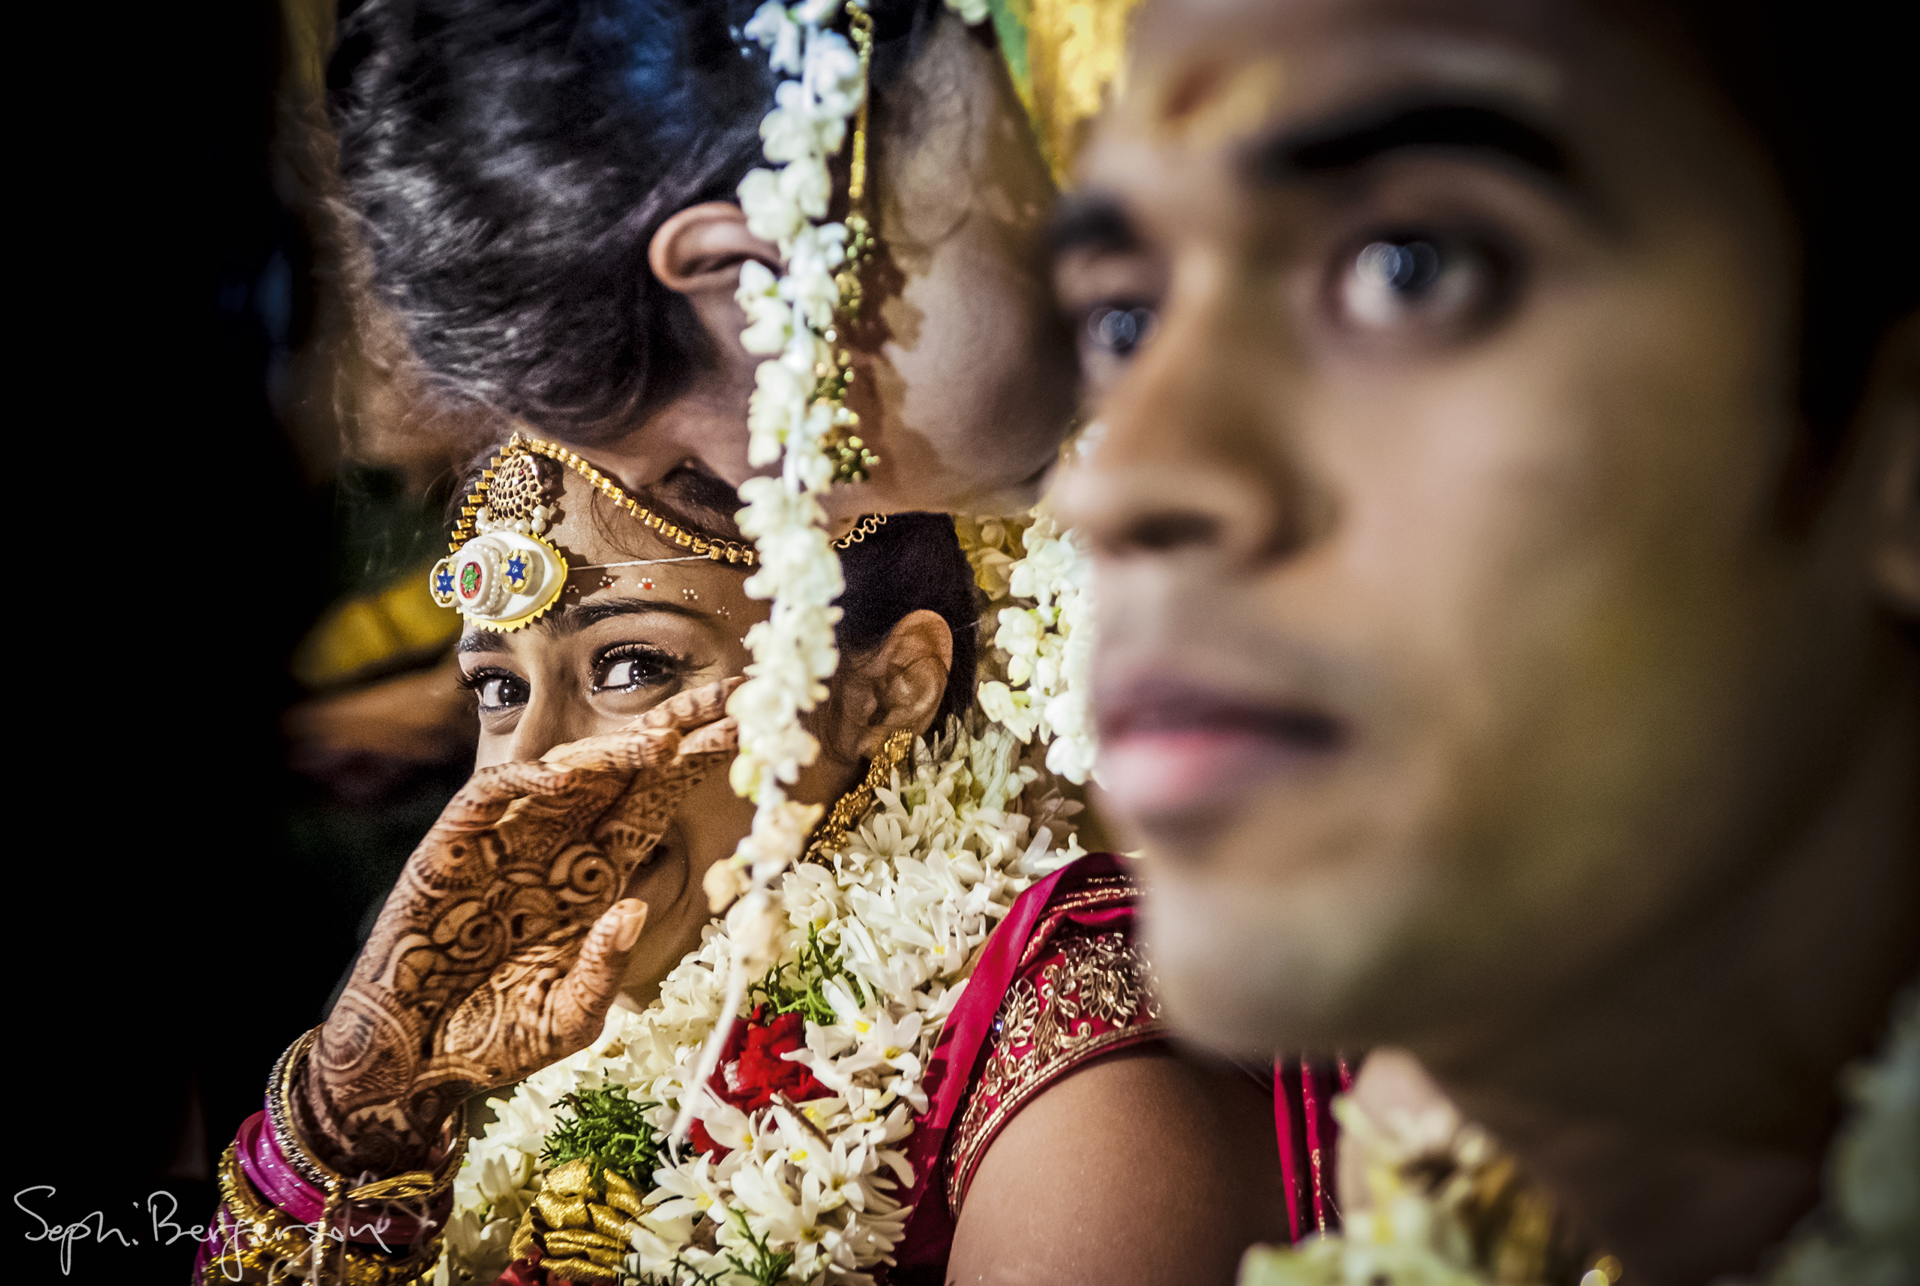 Frightened bride at Indian wedding - Photo by Sephi Bergerson